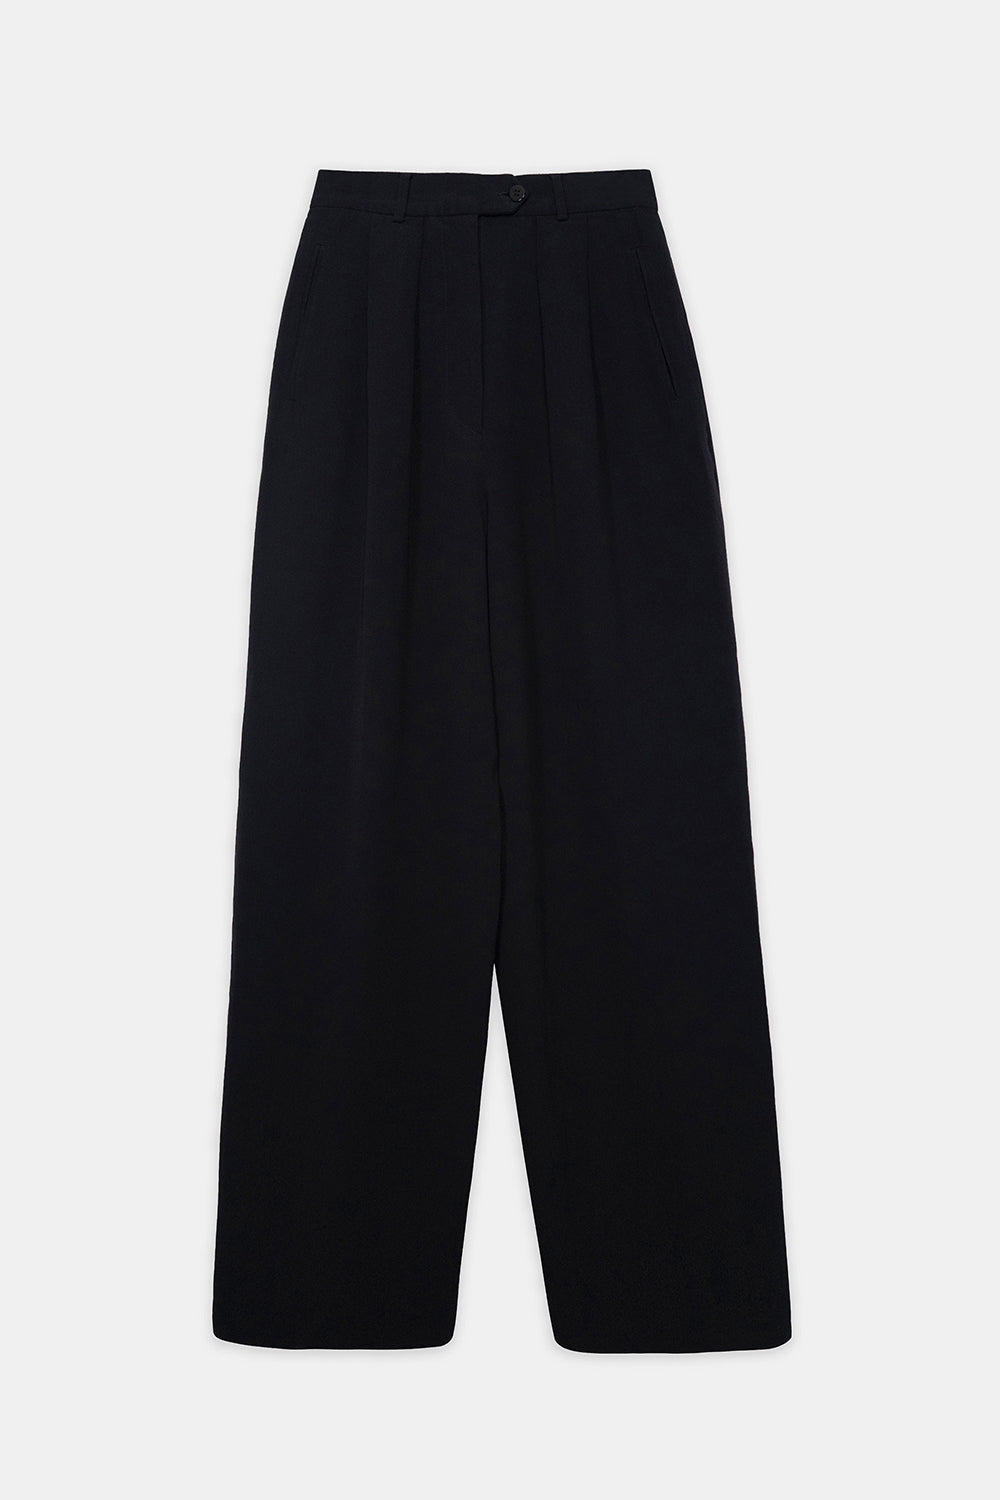 Emporio Armani Vintage Tailored High Waist Trousers Detail